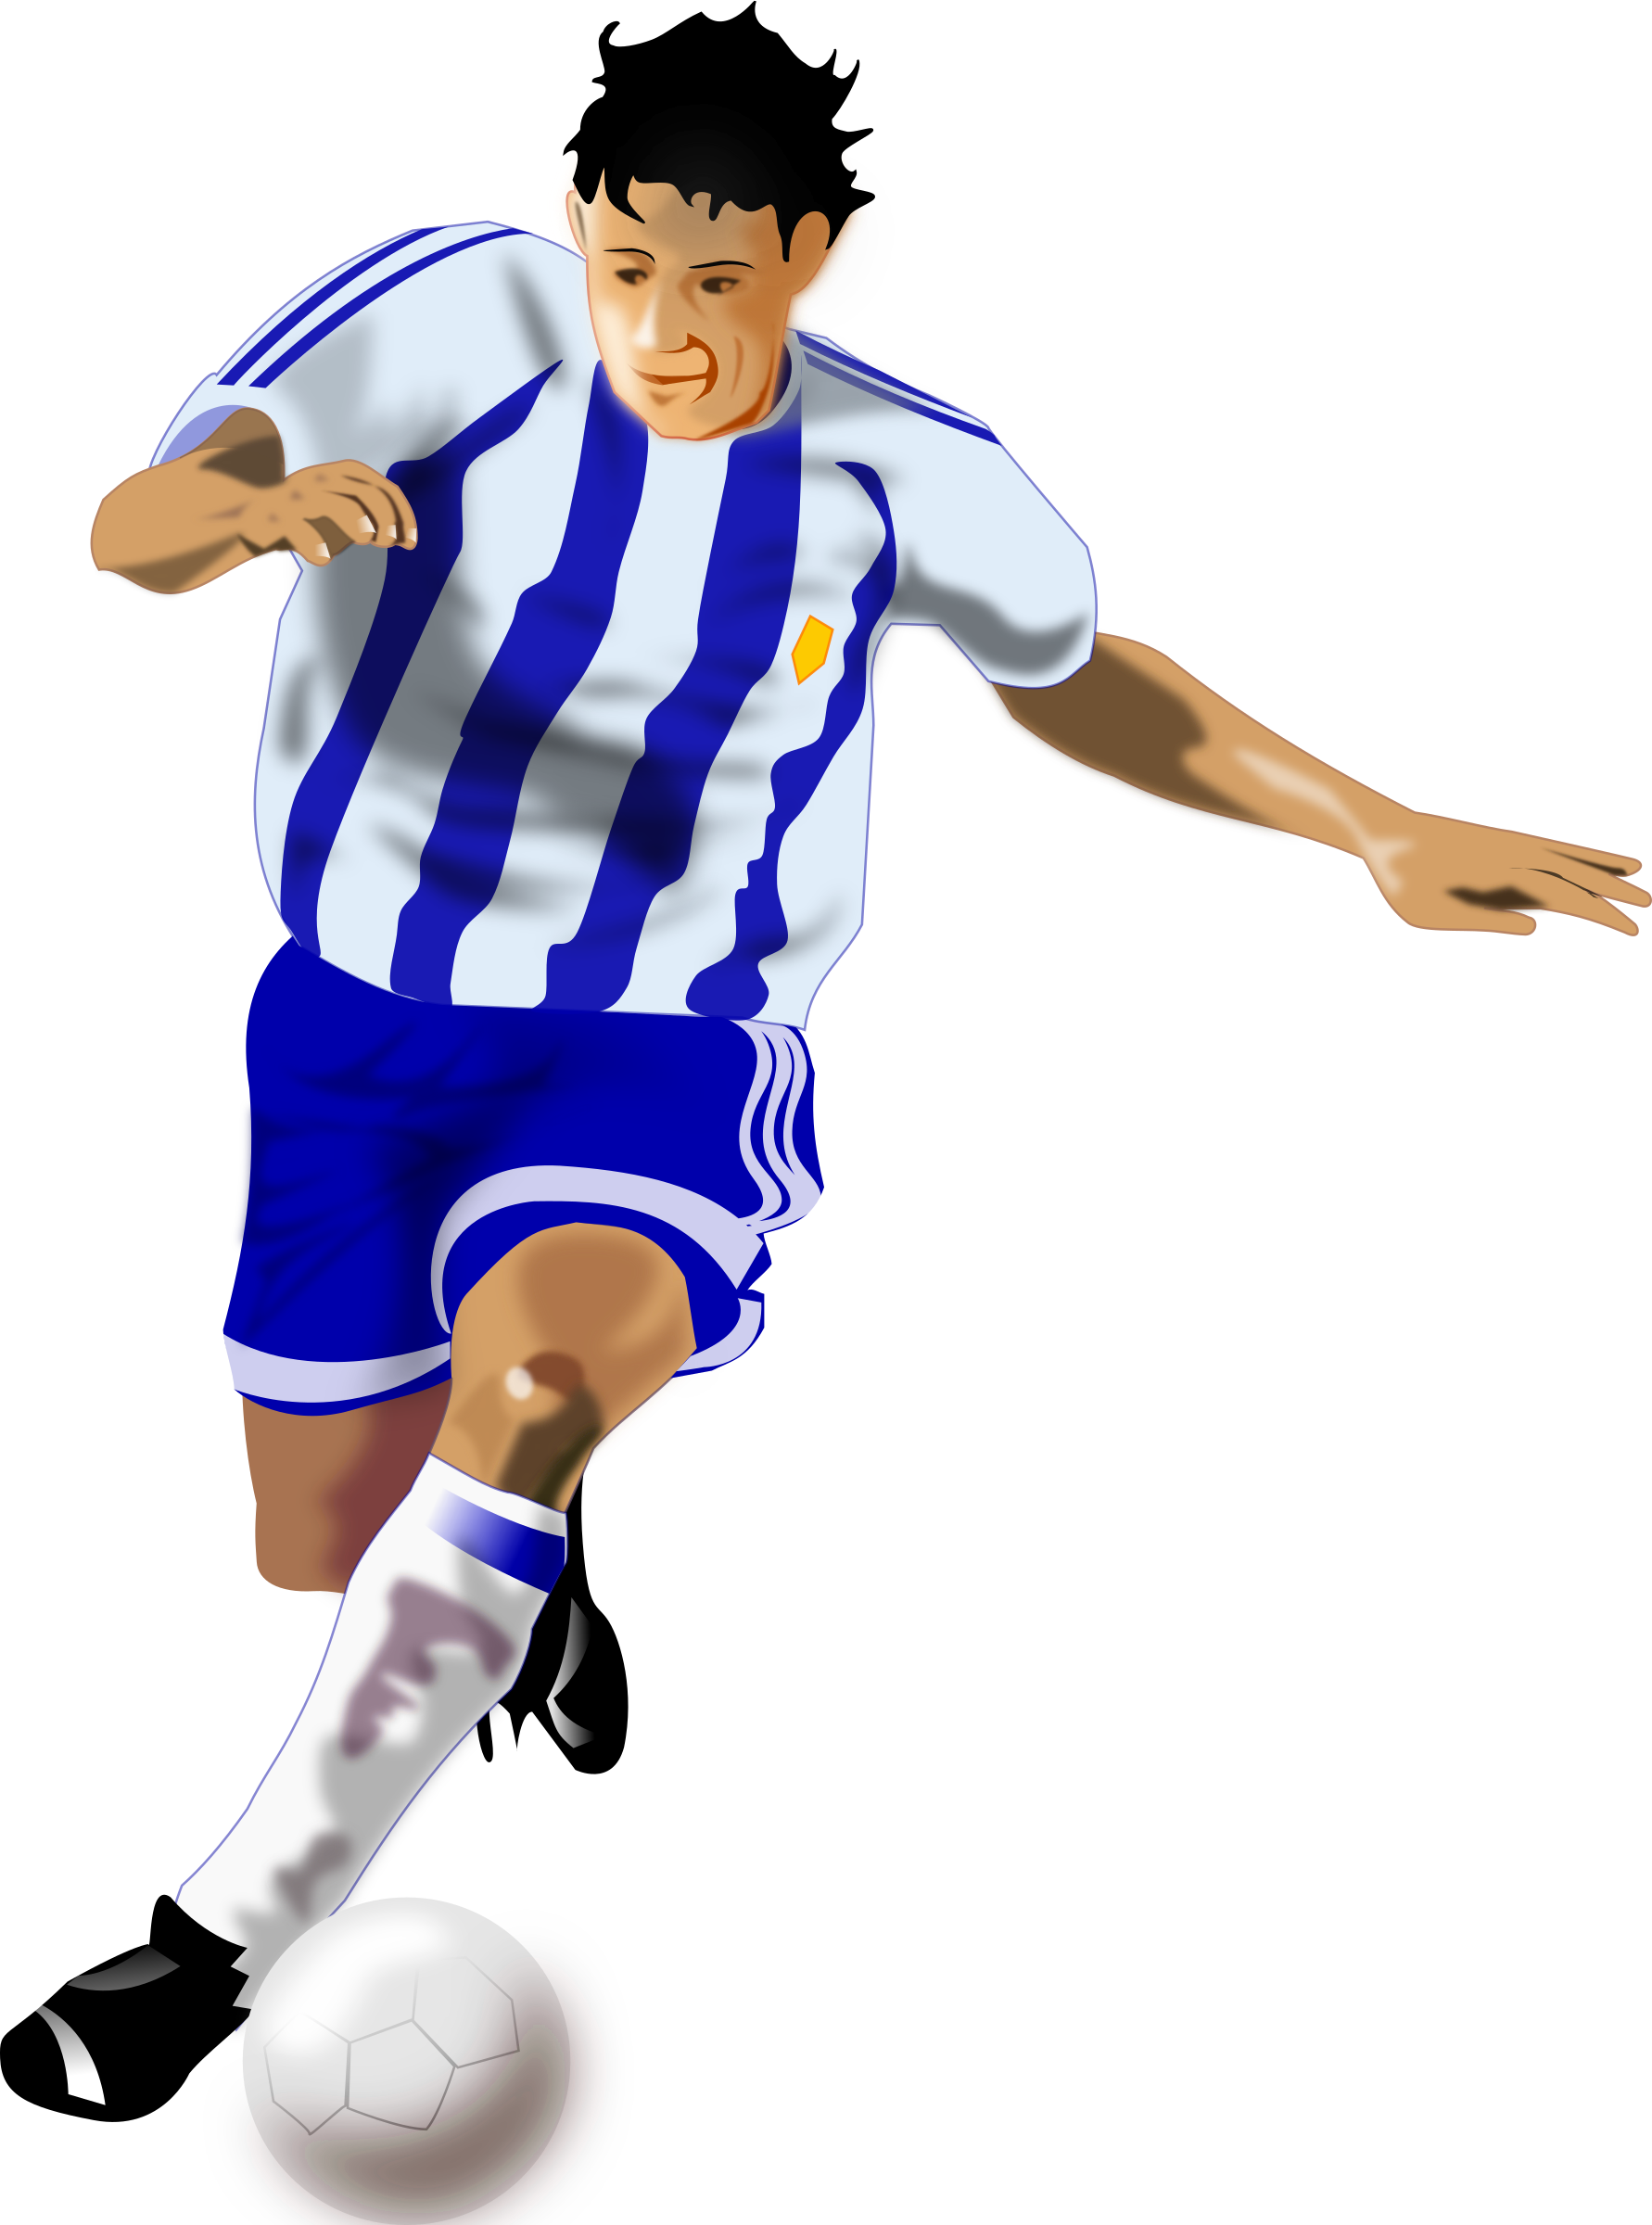 futbolista (soccer player) by sam_uy